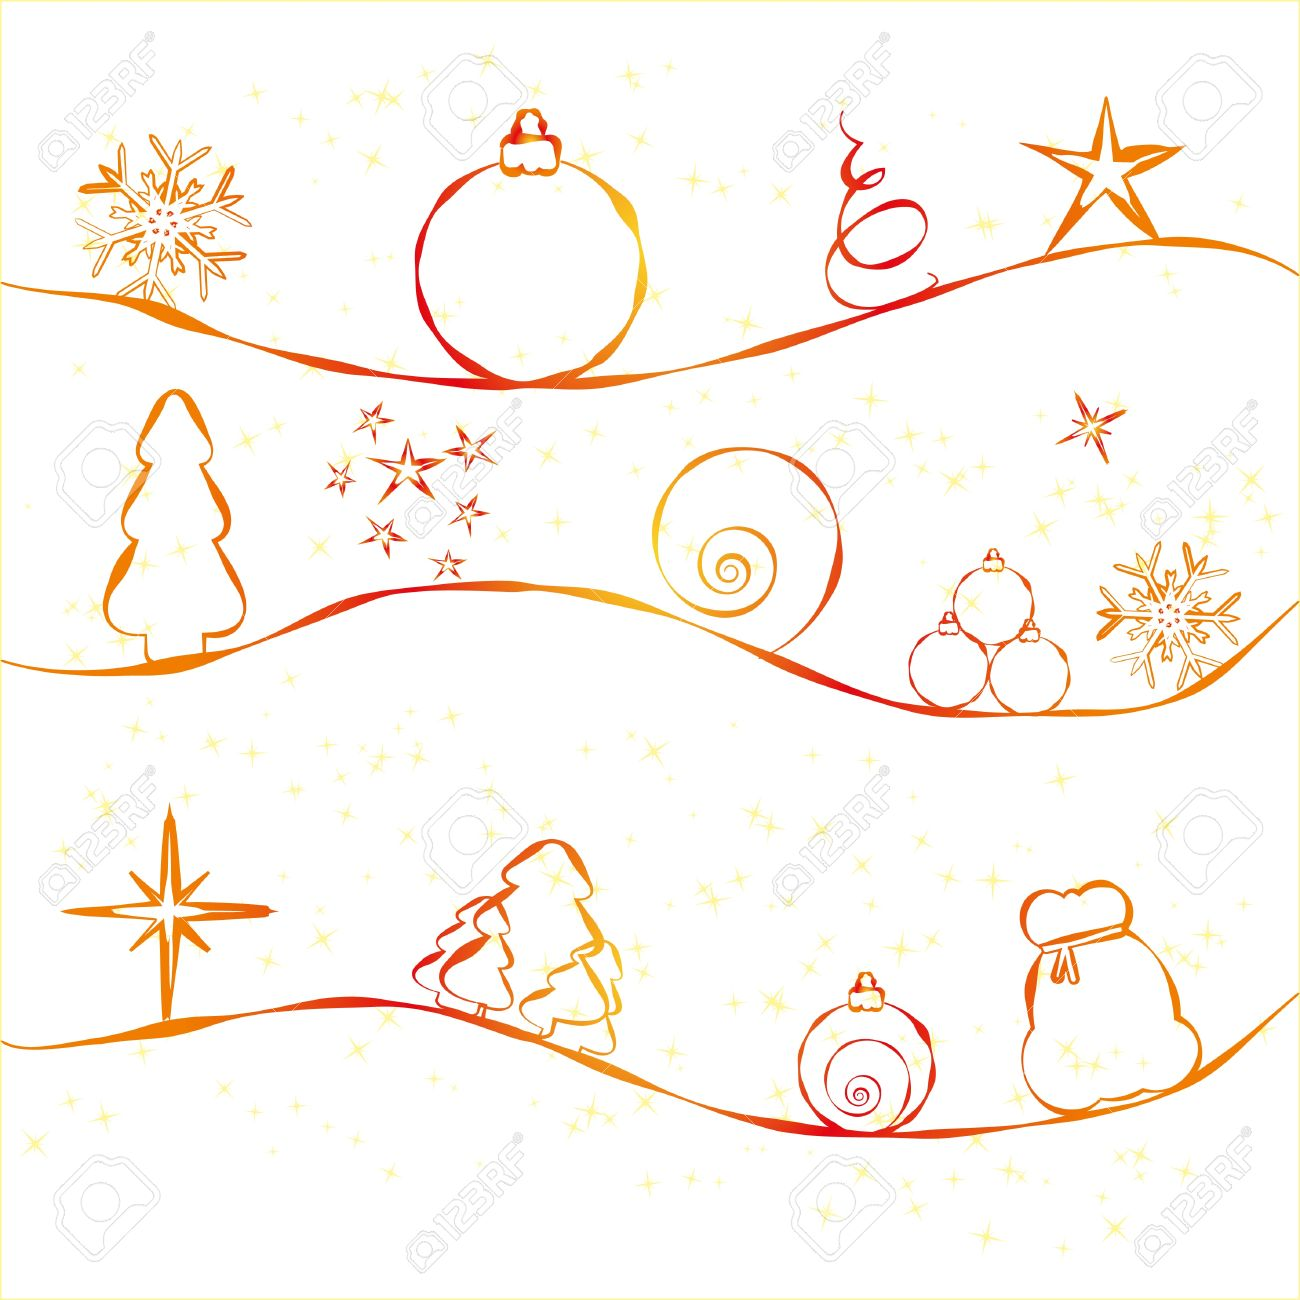 Christmas elements for cards vector